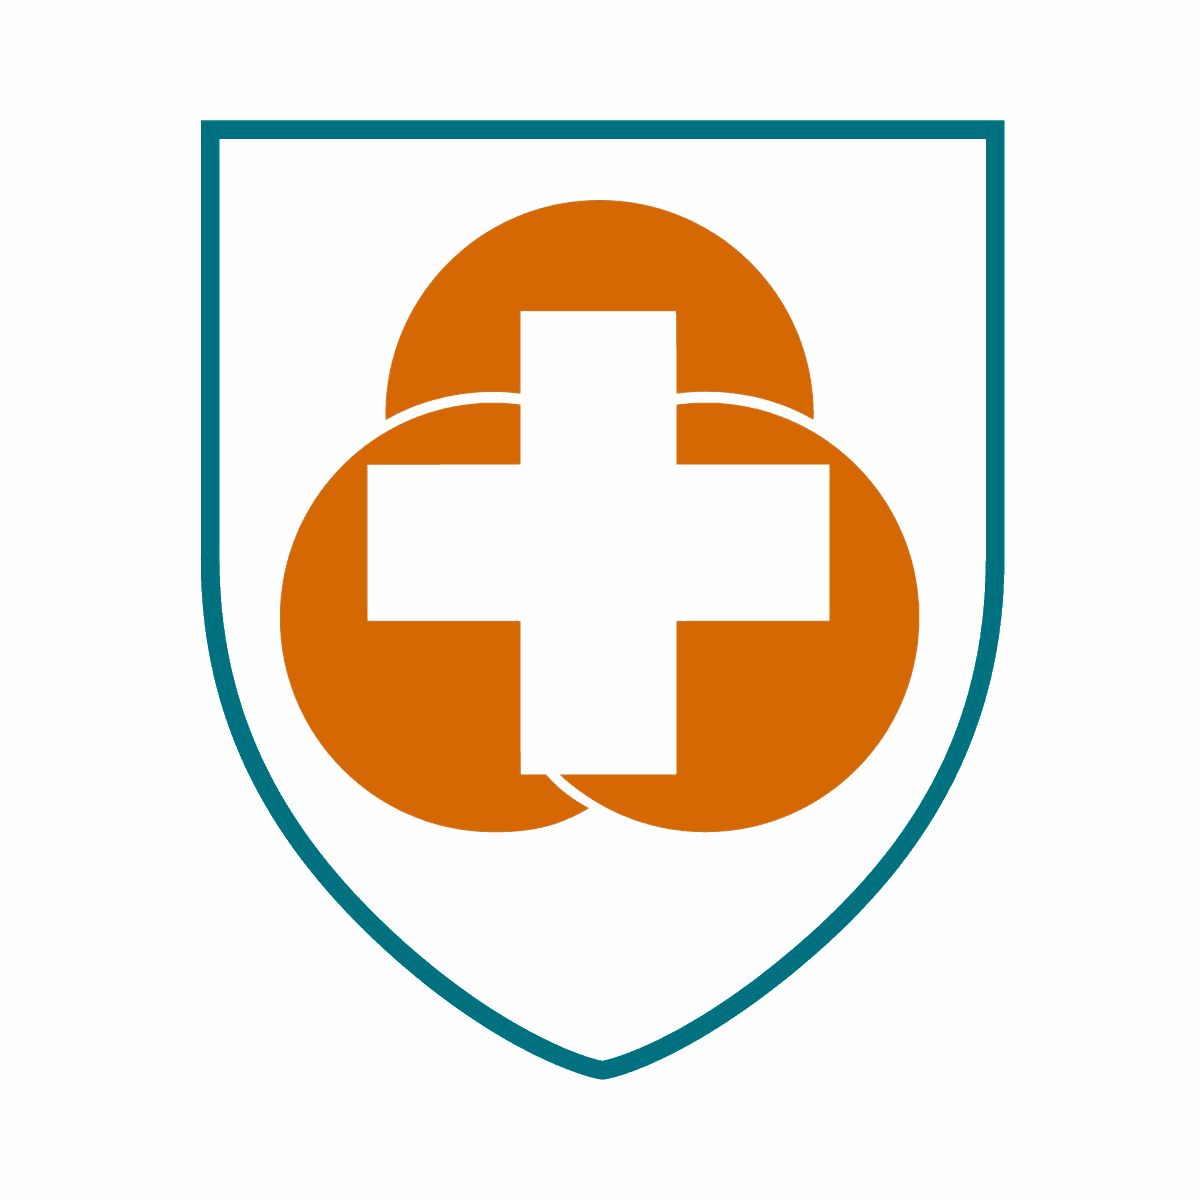 a version of the social medwork logo